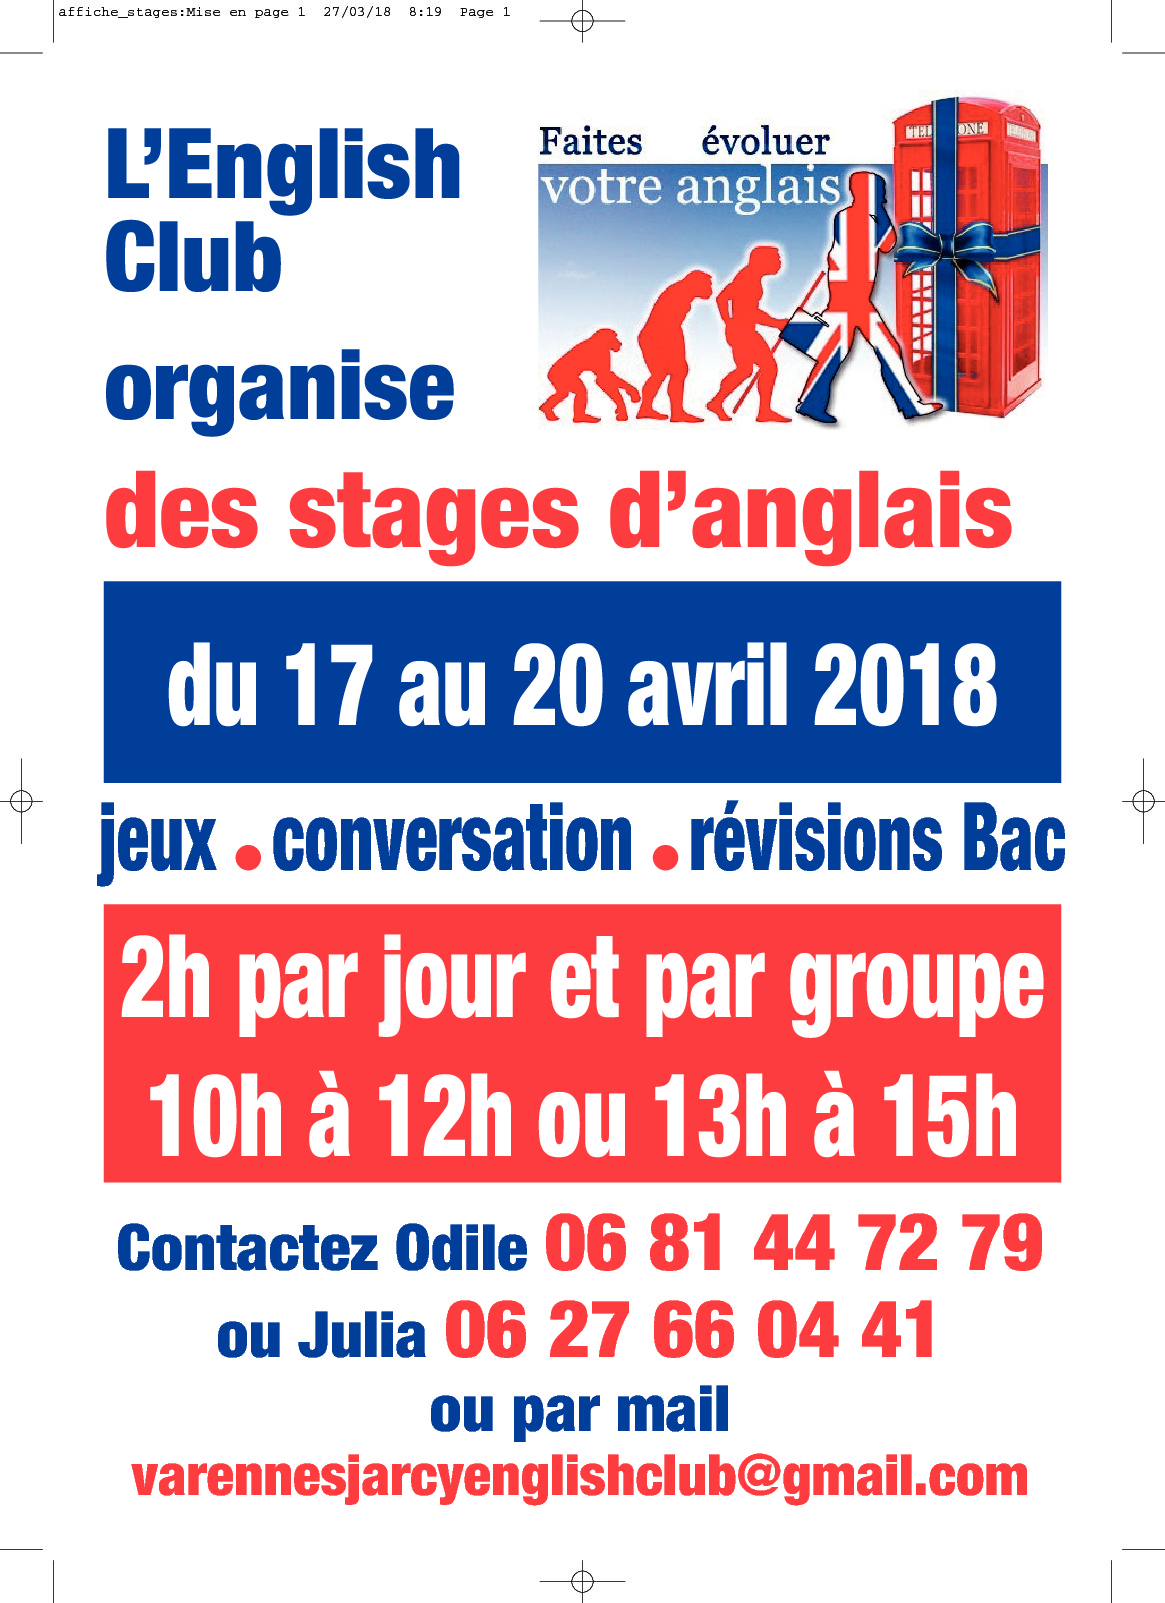 thumbnail of affiche_stages_EnglishClub